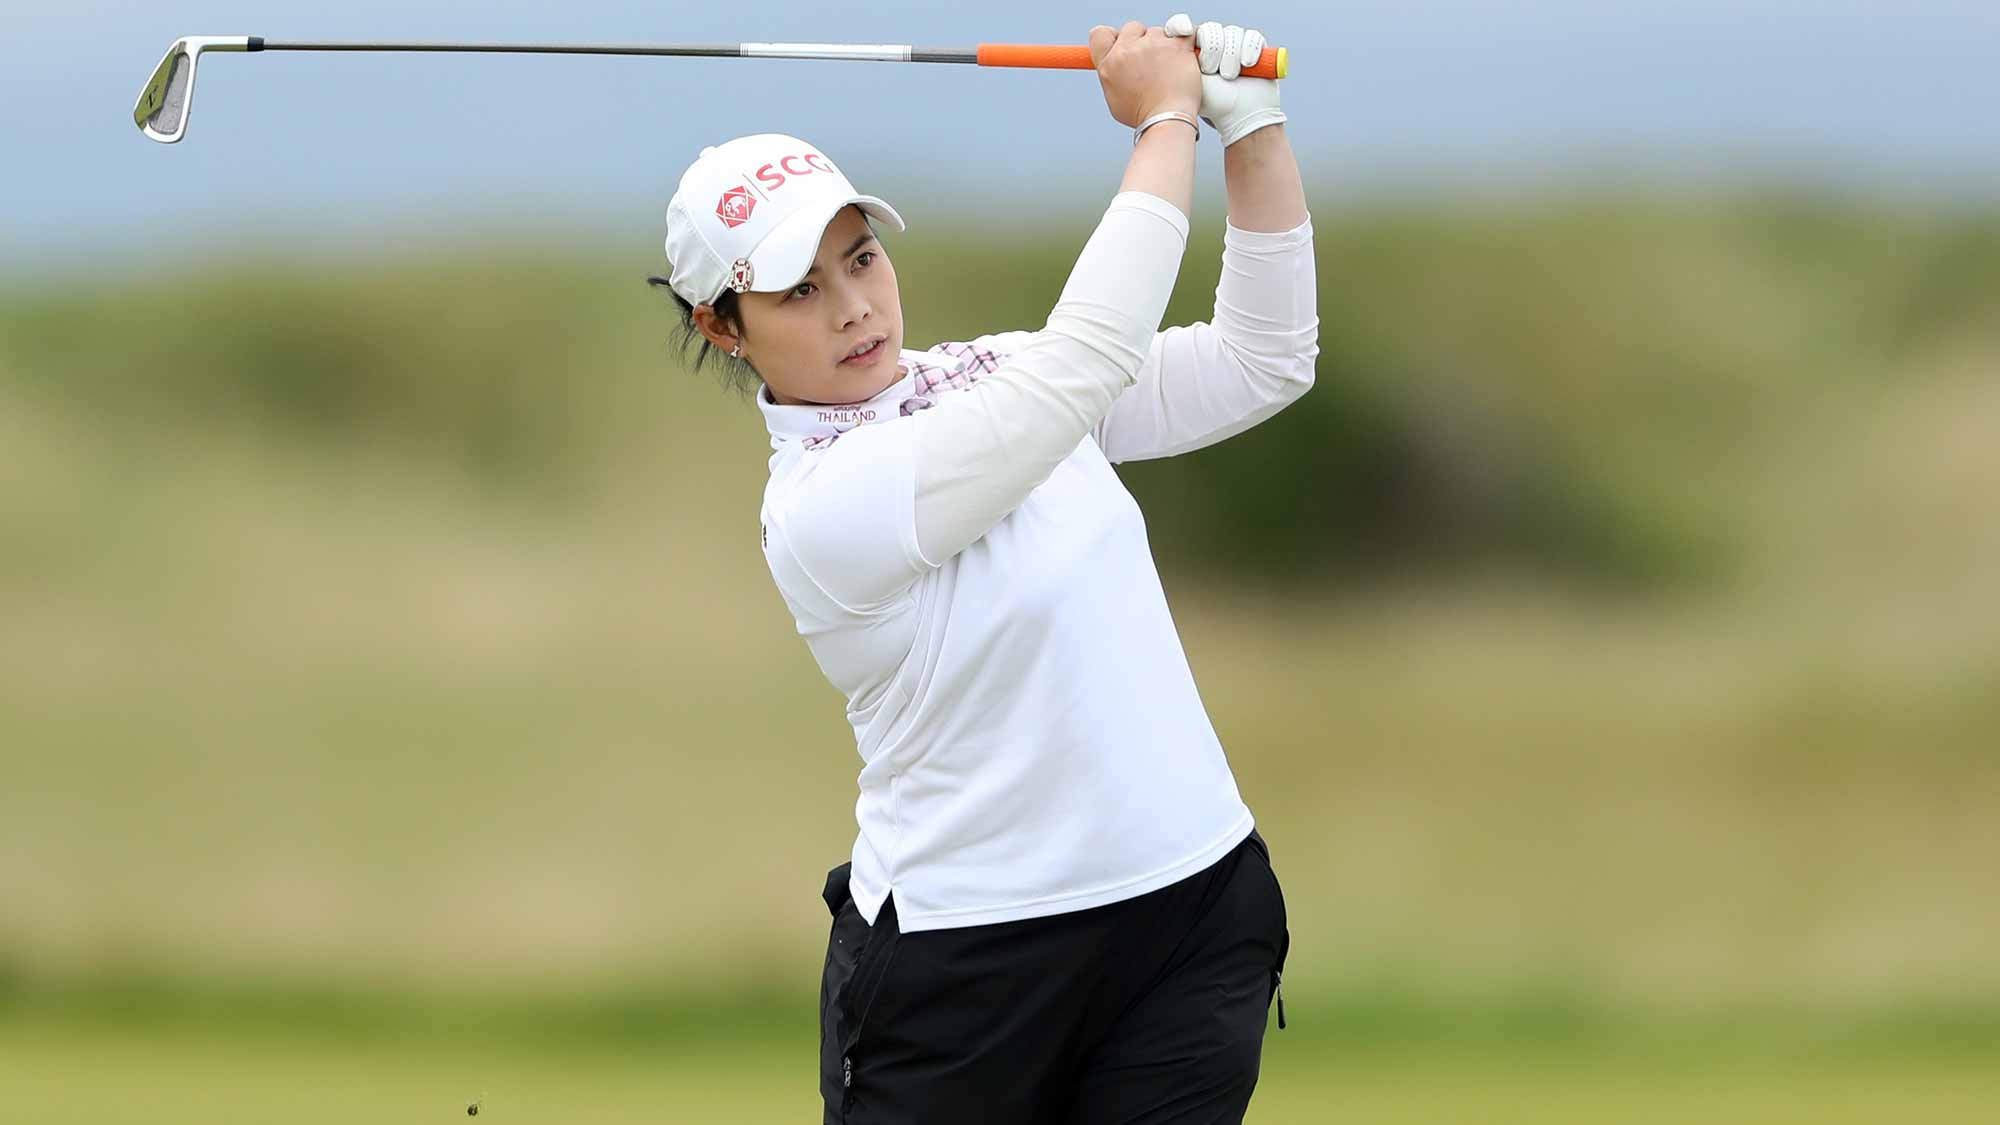 Moriya Jutanugarn of Thailand hits her second shot on the 3rd hole during the final round of the Ricoh Women's British Open at Kingsbarns Golf Links